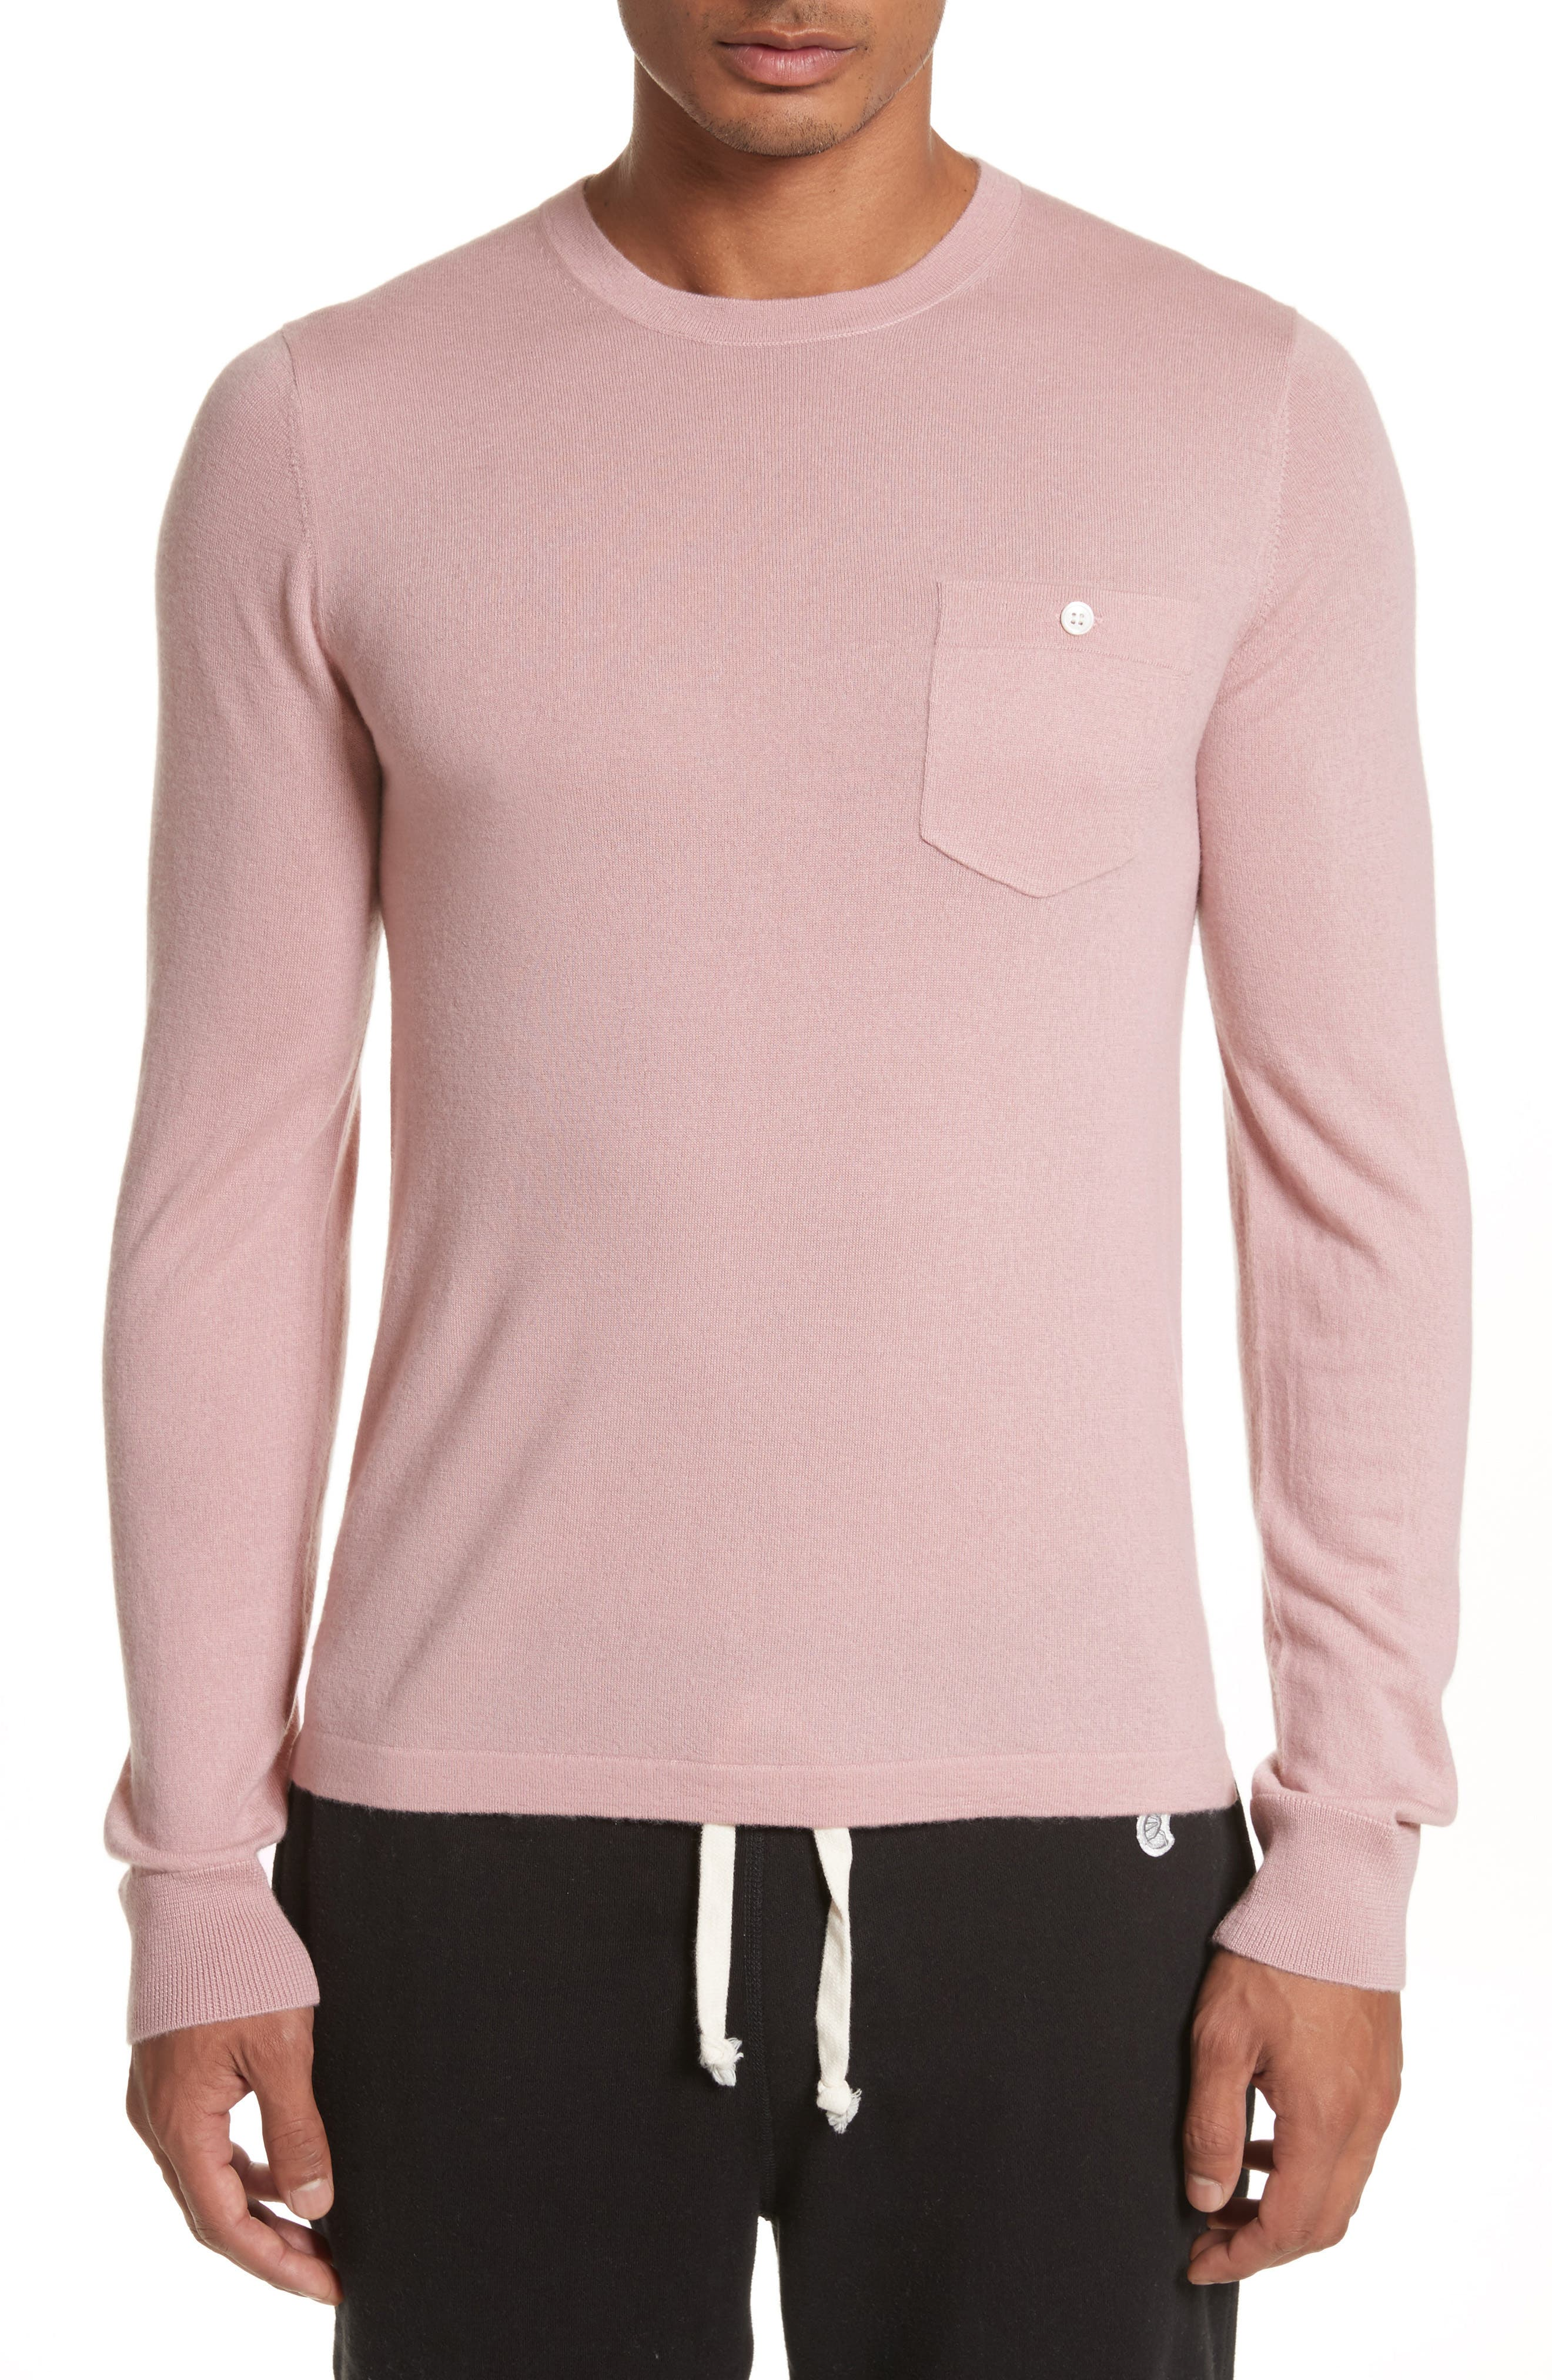 Todd Snyder Cashmere Long Sleeve T-Shirt